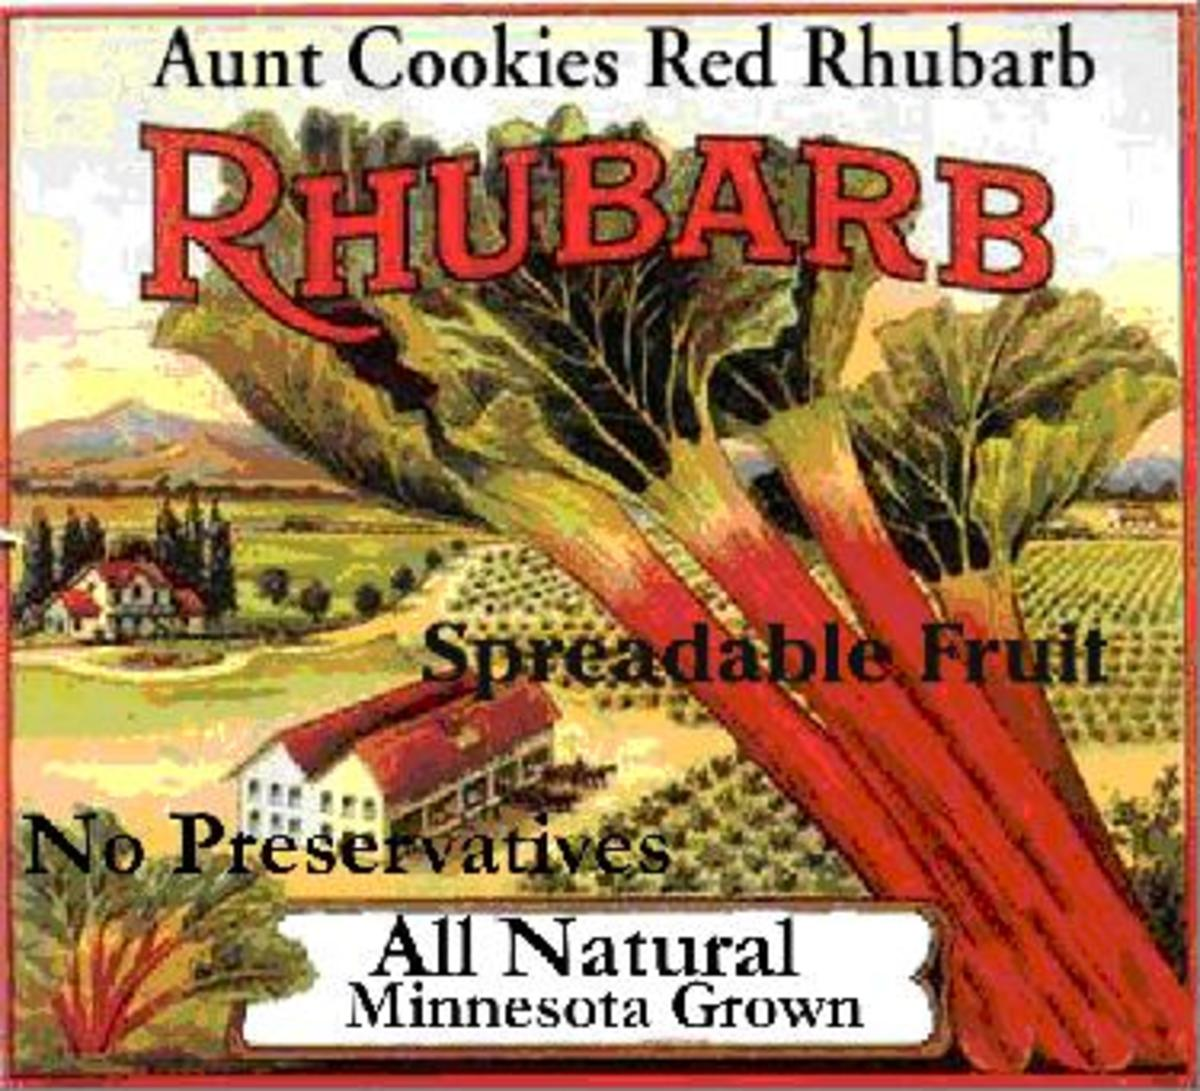 Rhubarb was once used as a cheap sweetener.